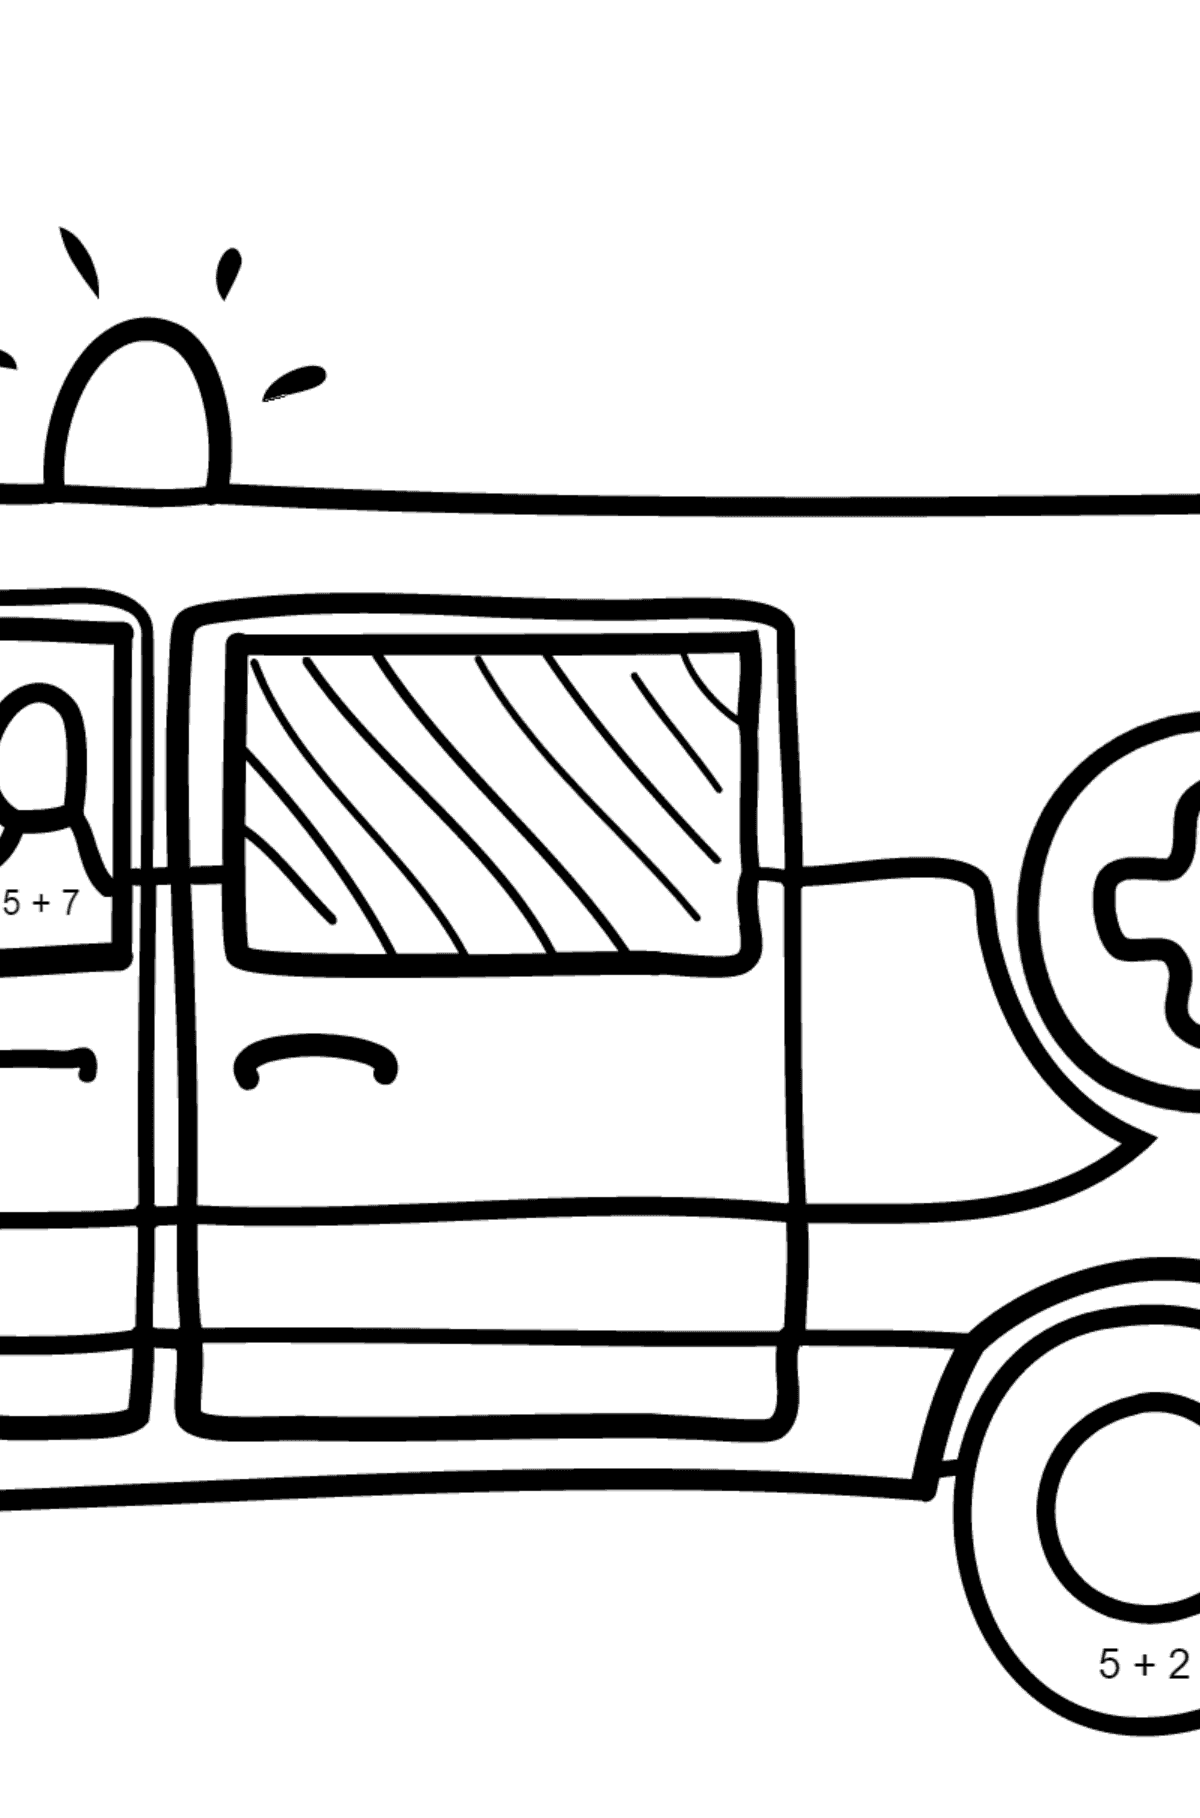 Coloring Page - An Ambulance for Kids  - Color by Number Addition